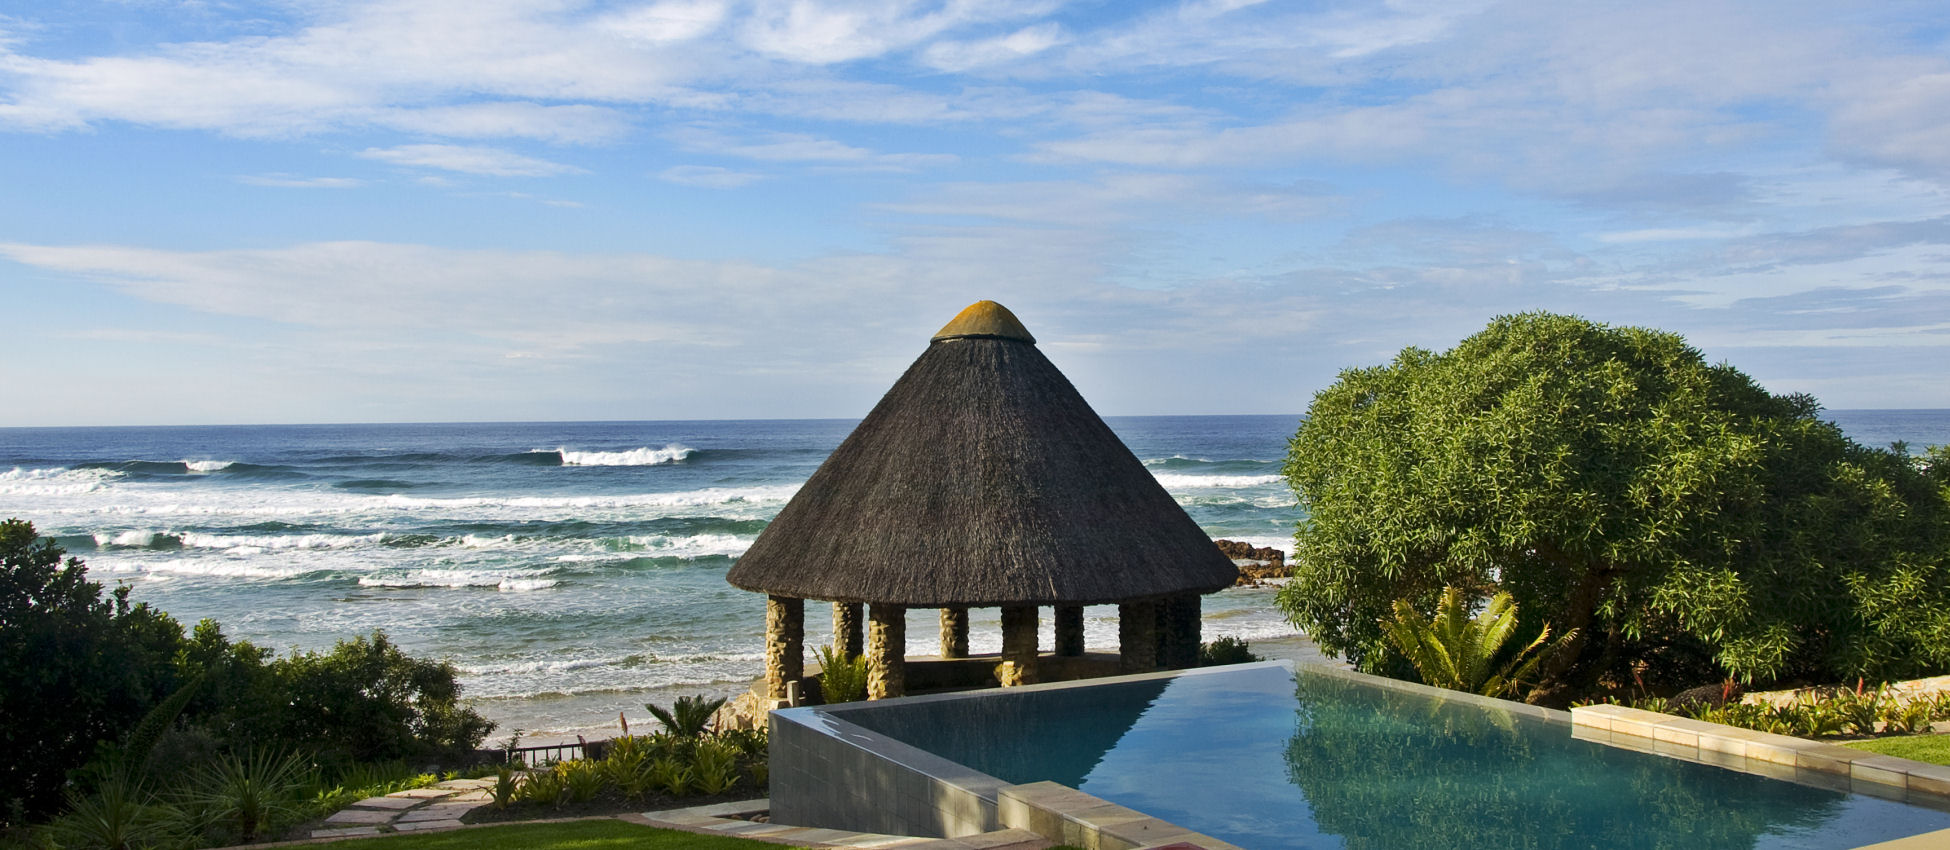 Pezula Private Castle, Noetzie Beach Accommodation, Garden Route